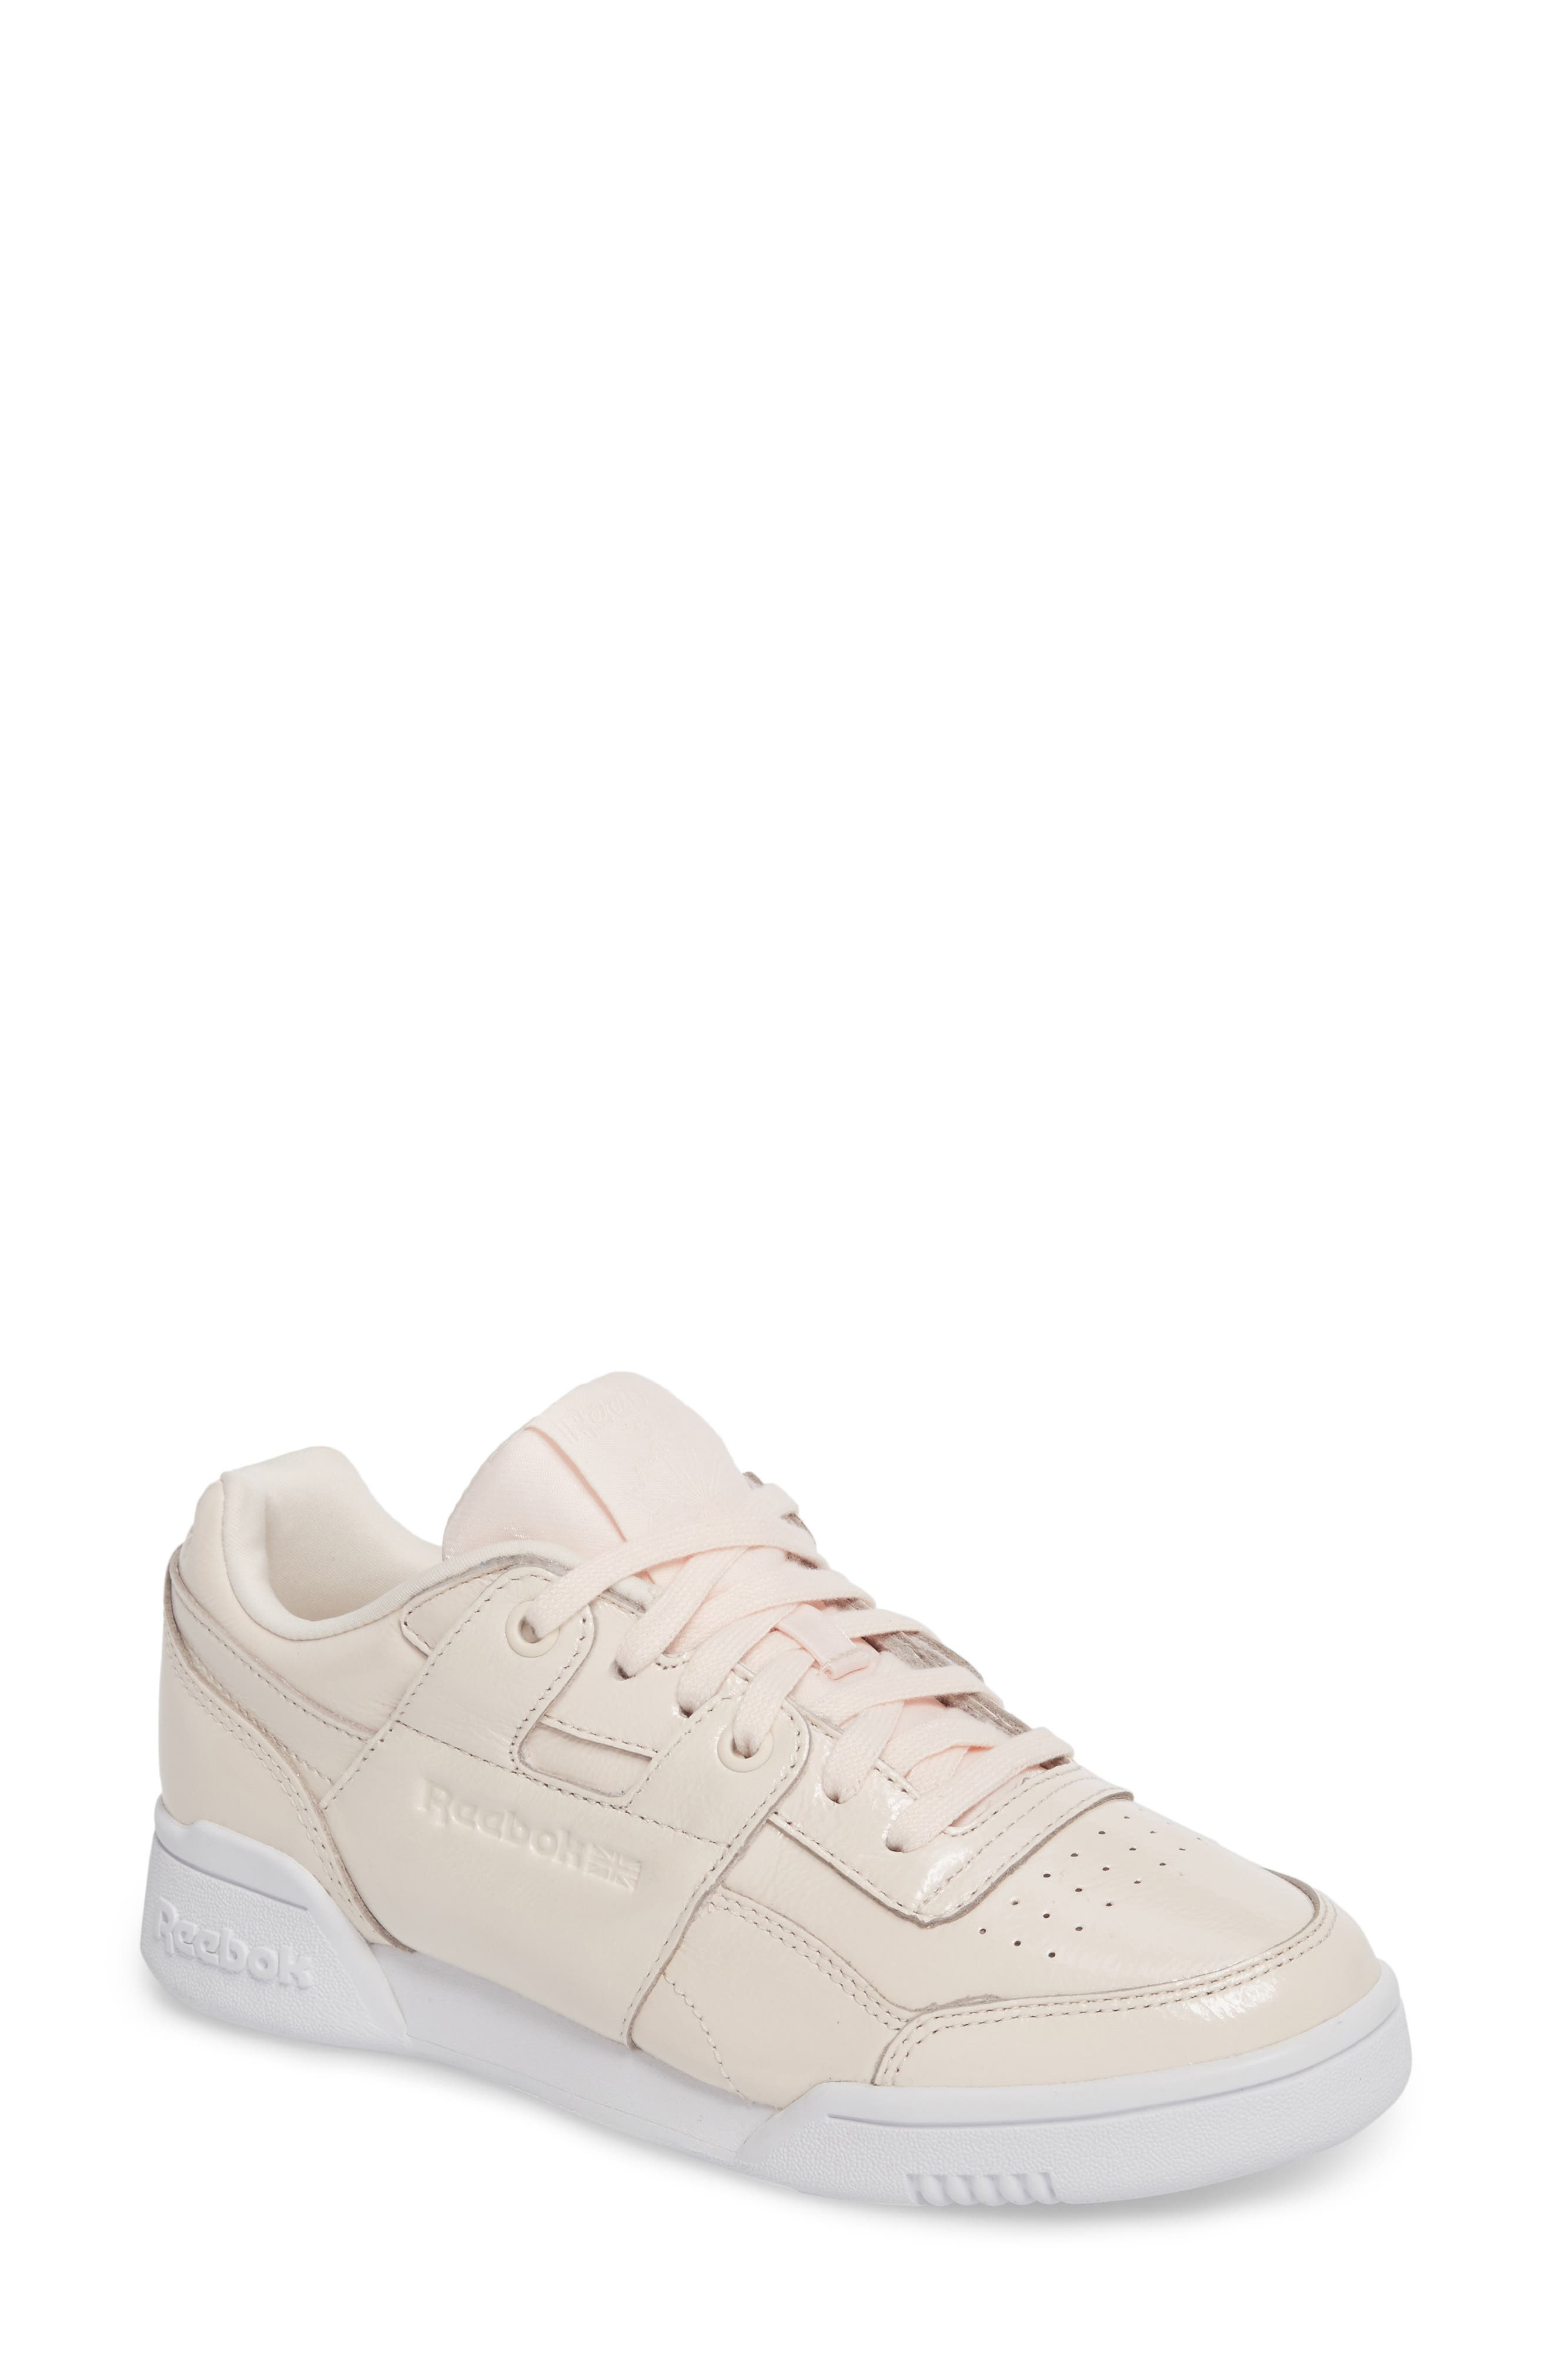 Reebok Workout Lo Plus Iridescent Sneaker (Women)